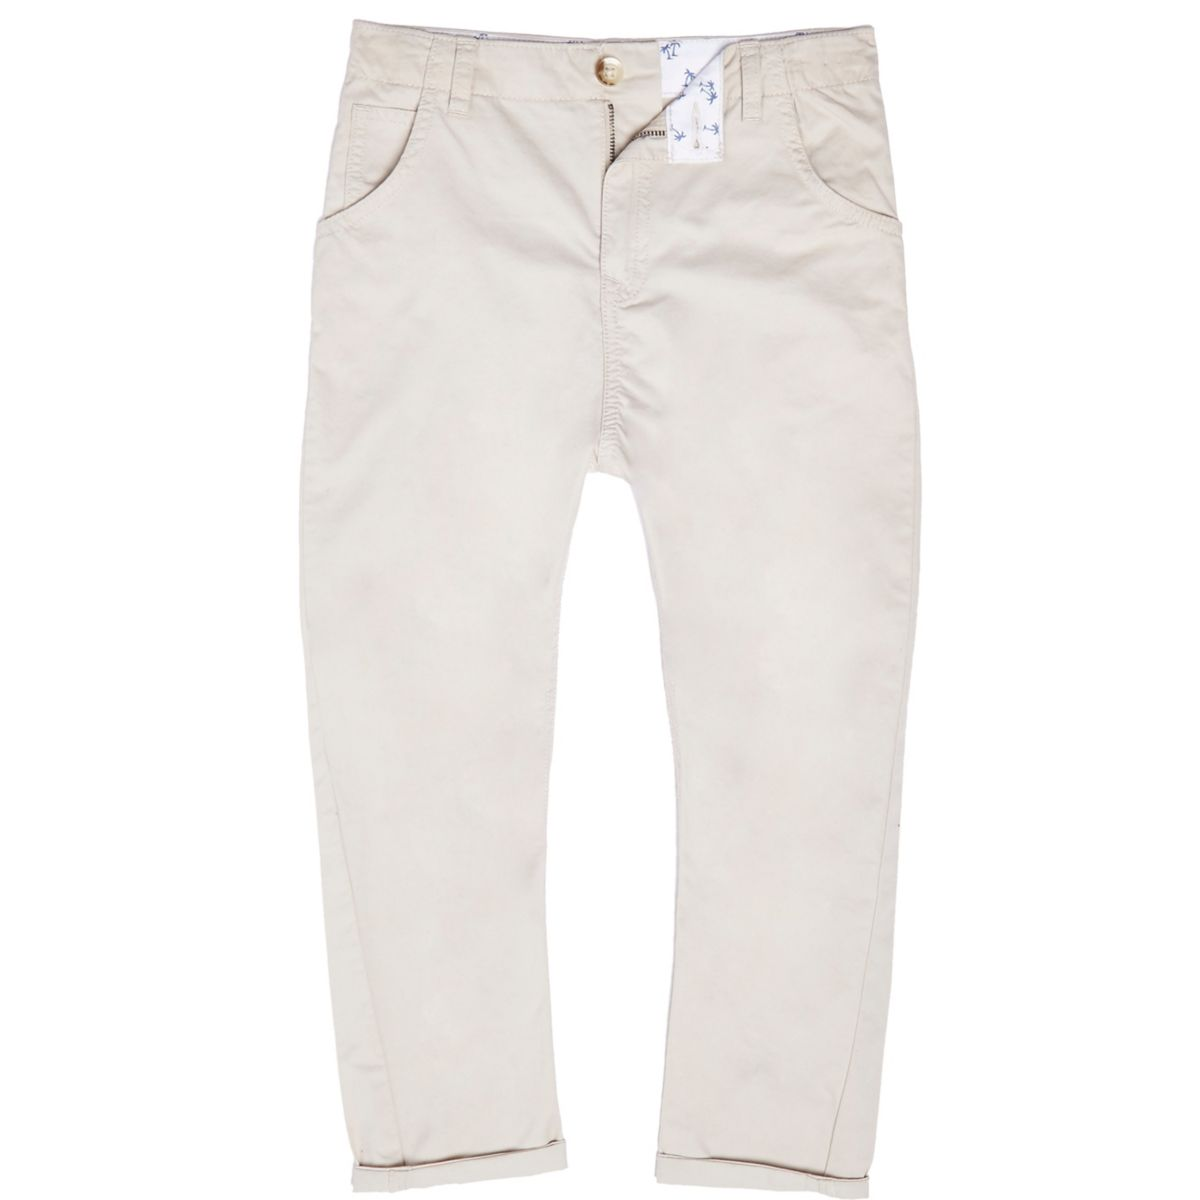 Boys stone tapered chino pants